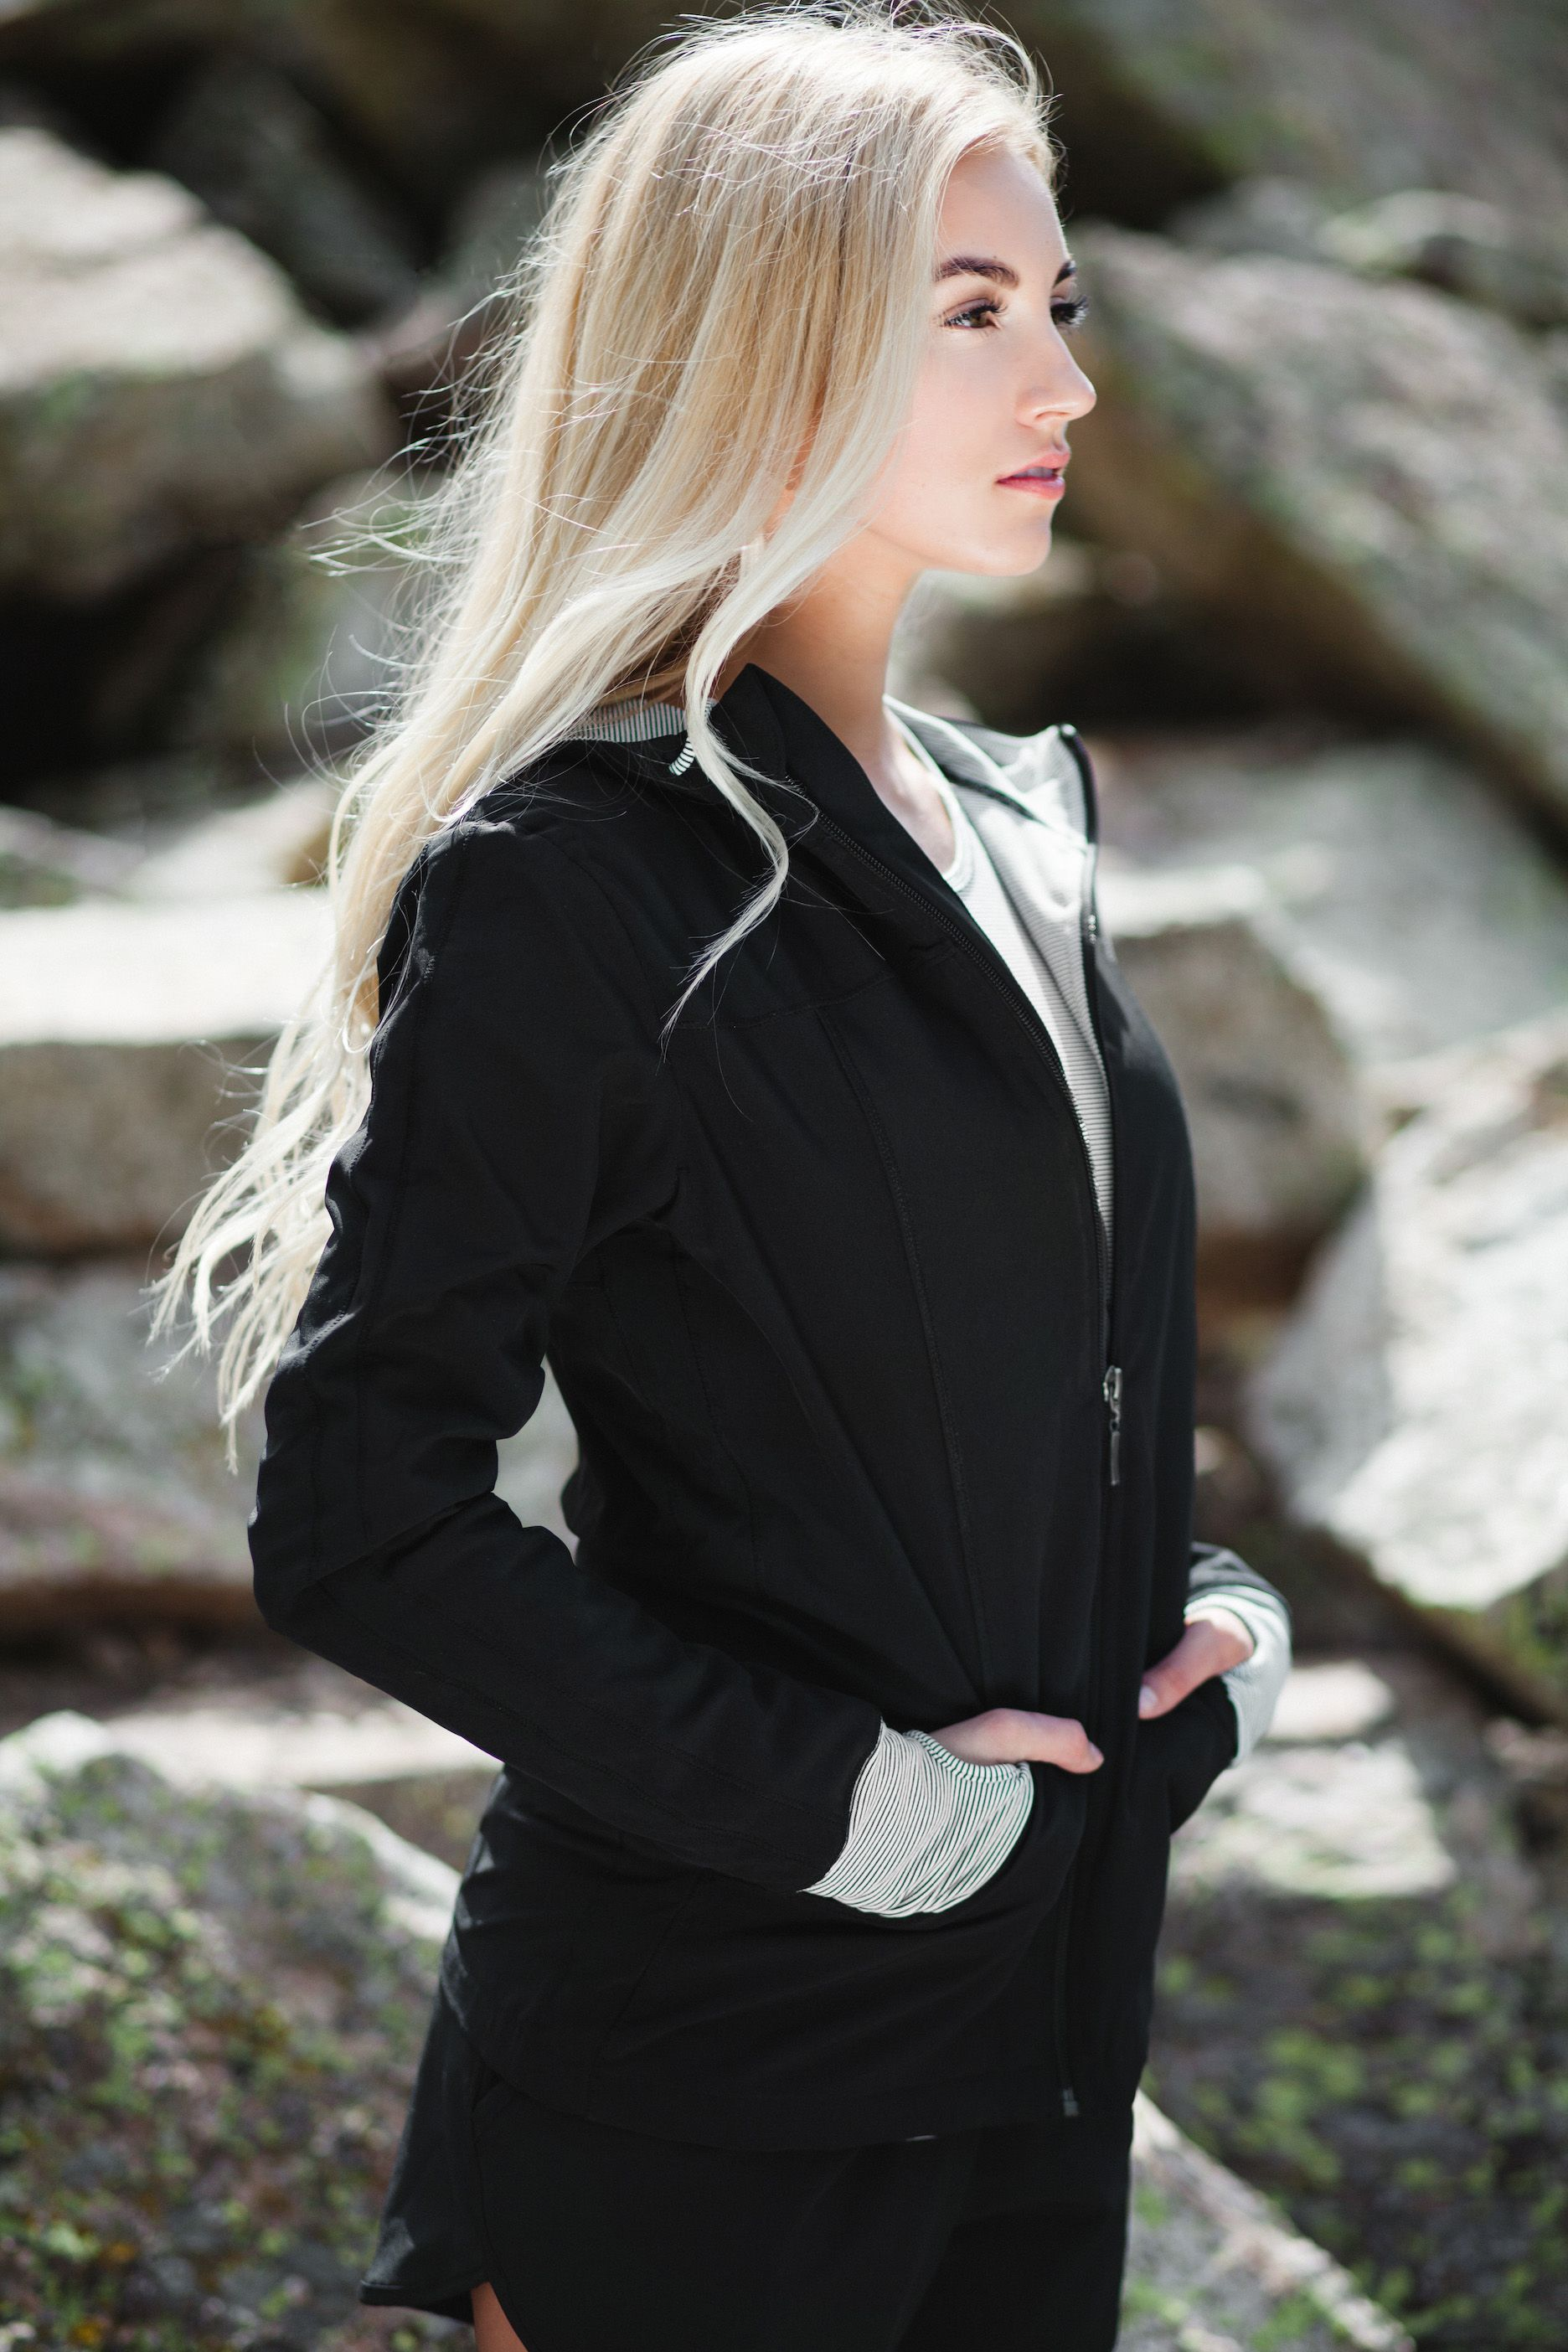 NEW!!! introducing our sporty & slimming {Escape Zip Up Hoodie} pair with our sprinter shorts or high waisted leggings for the perfect casual or fitness outfit | @albionfit